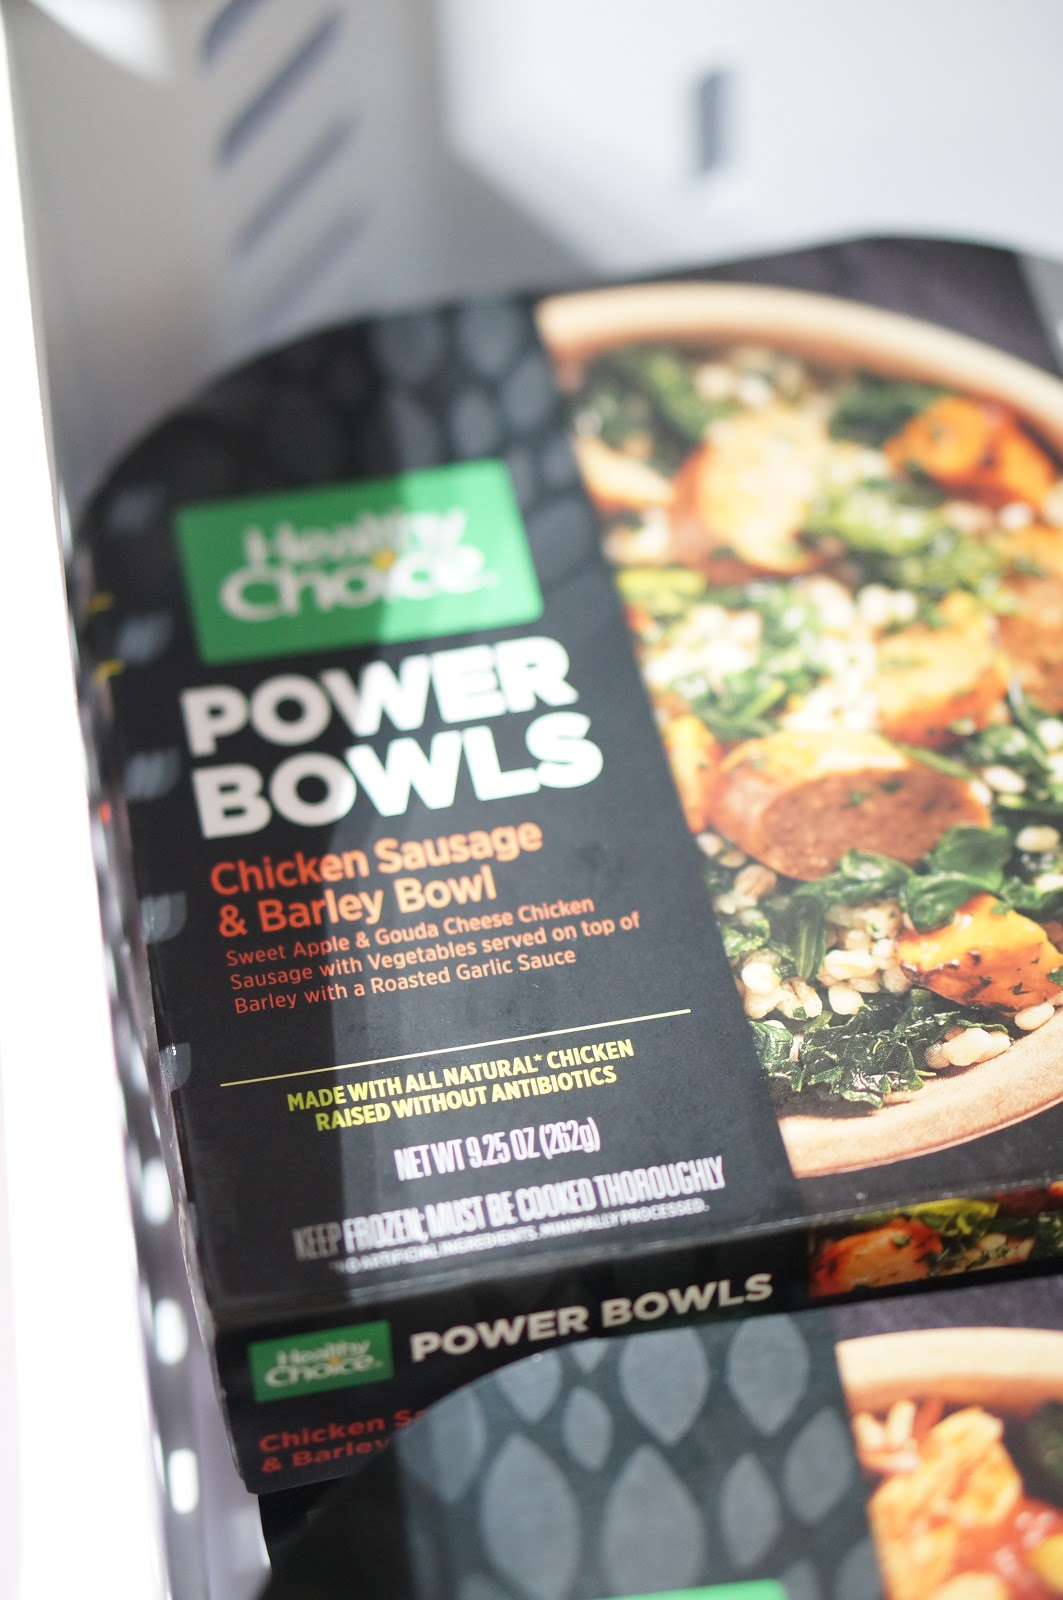 Rebecca Lately Health Choice Power Bowls and smartwater Bottled Water Staying Organized #CollectiveBias #PowerfullySmart